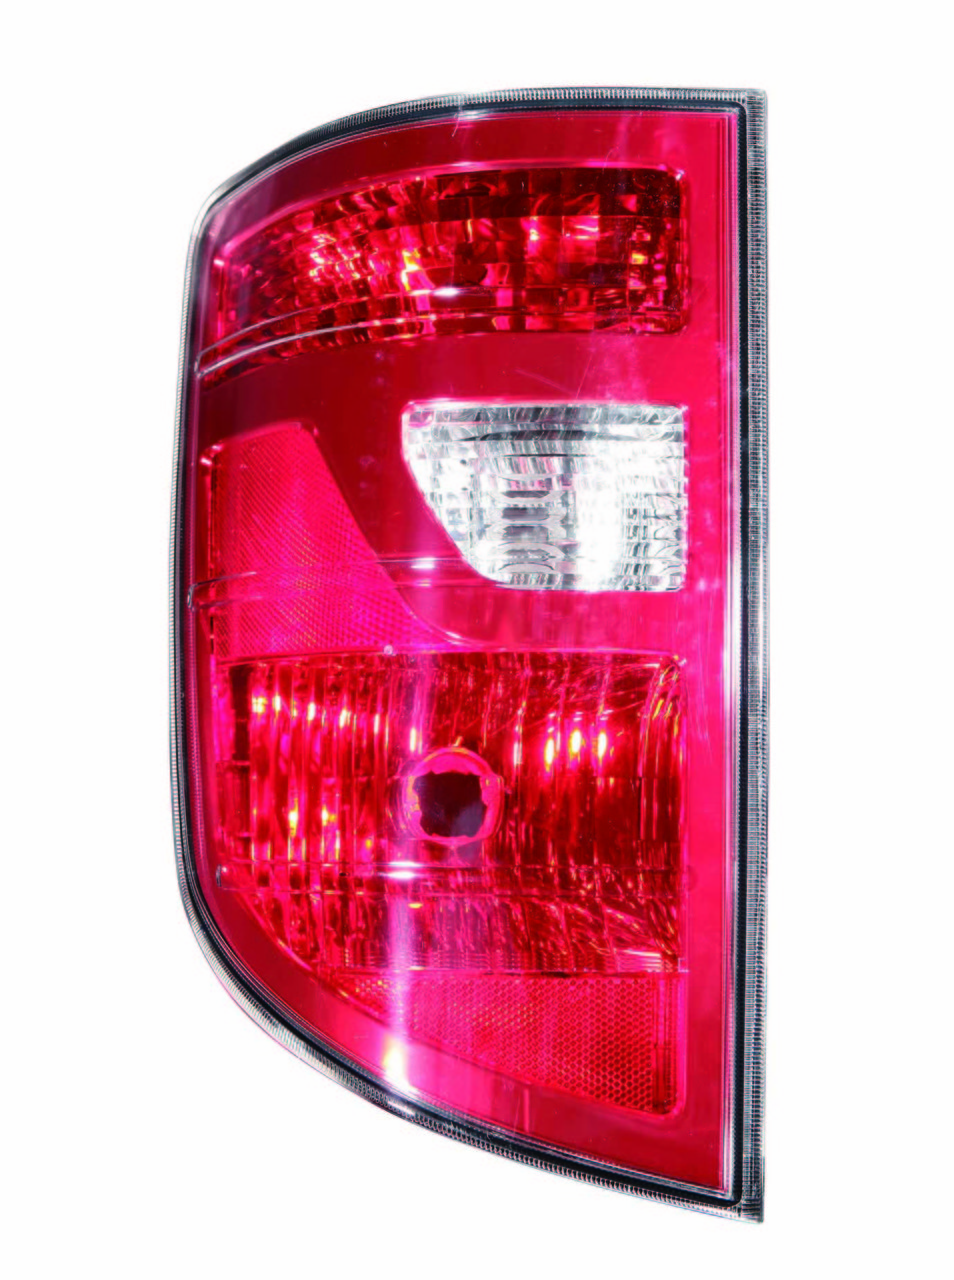 Honda Ridgeline 2009 2010 2011 tail light left driver